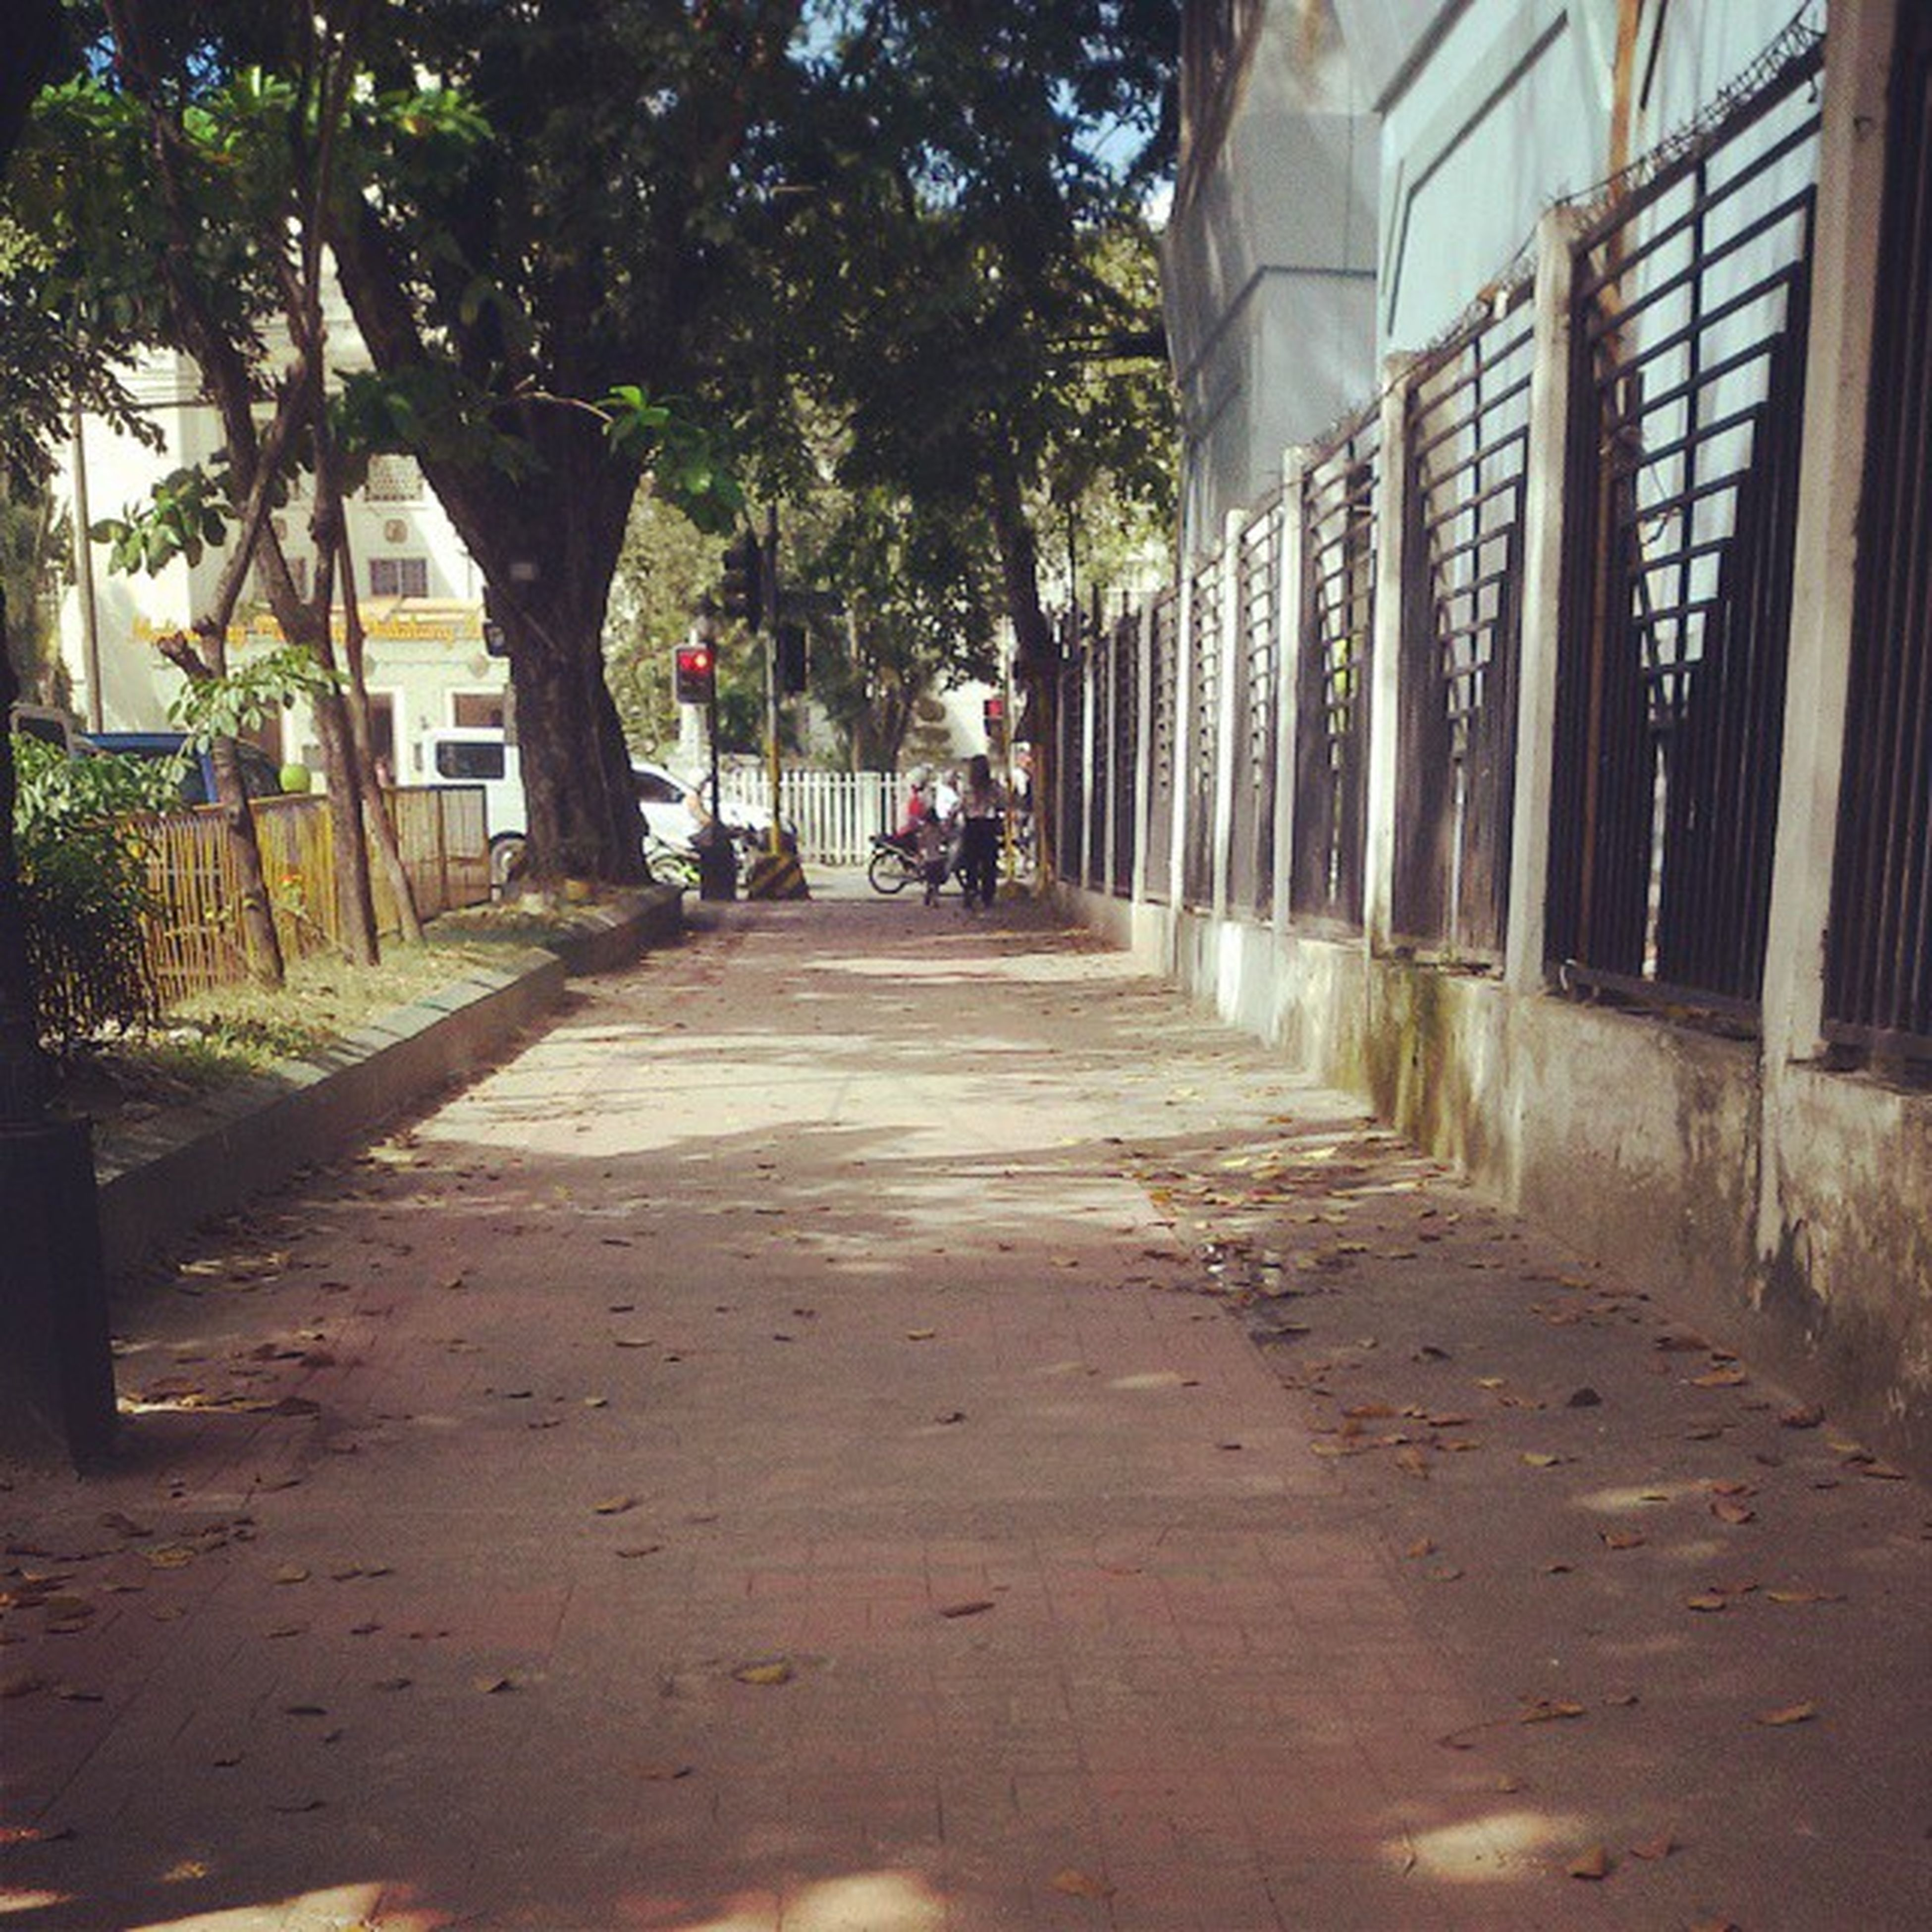 architecture, built structure, building exterior, the way forward, tree, street, transportation, incidental people, city, diminishing perspective, alley, sunlight, building, day, vanishing point, house, narrow, car, footpath, residential building